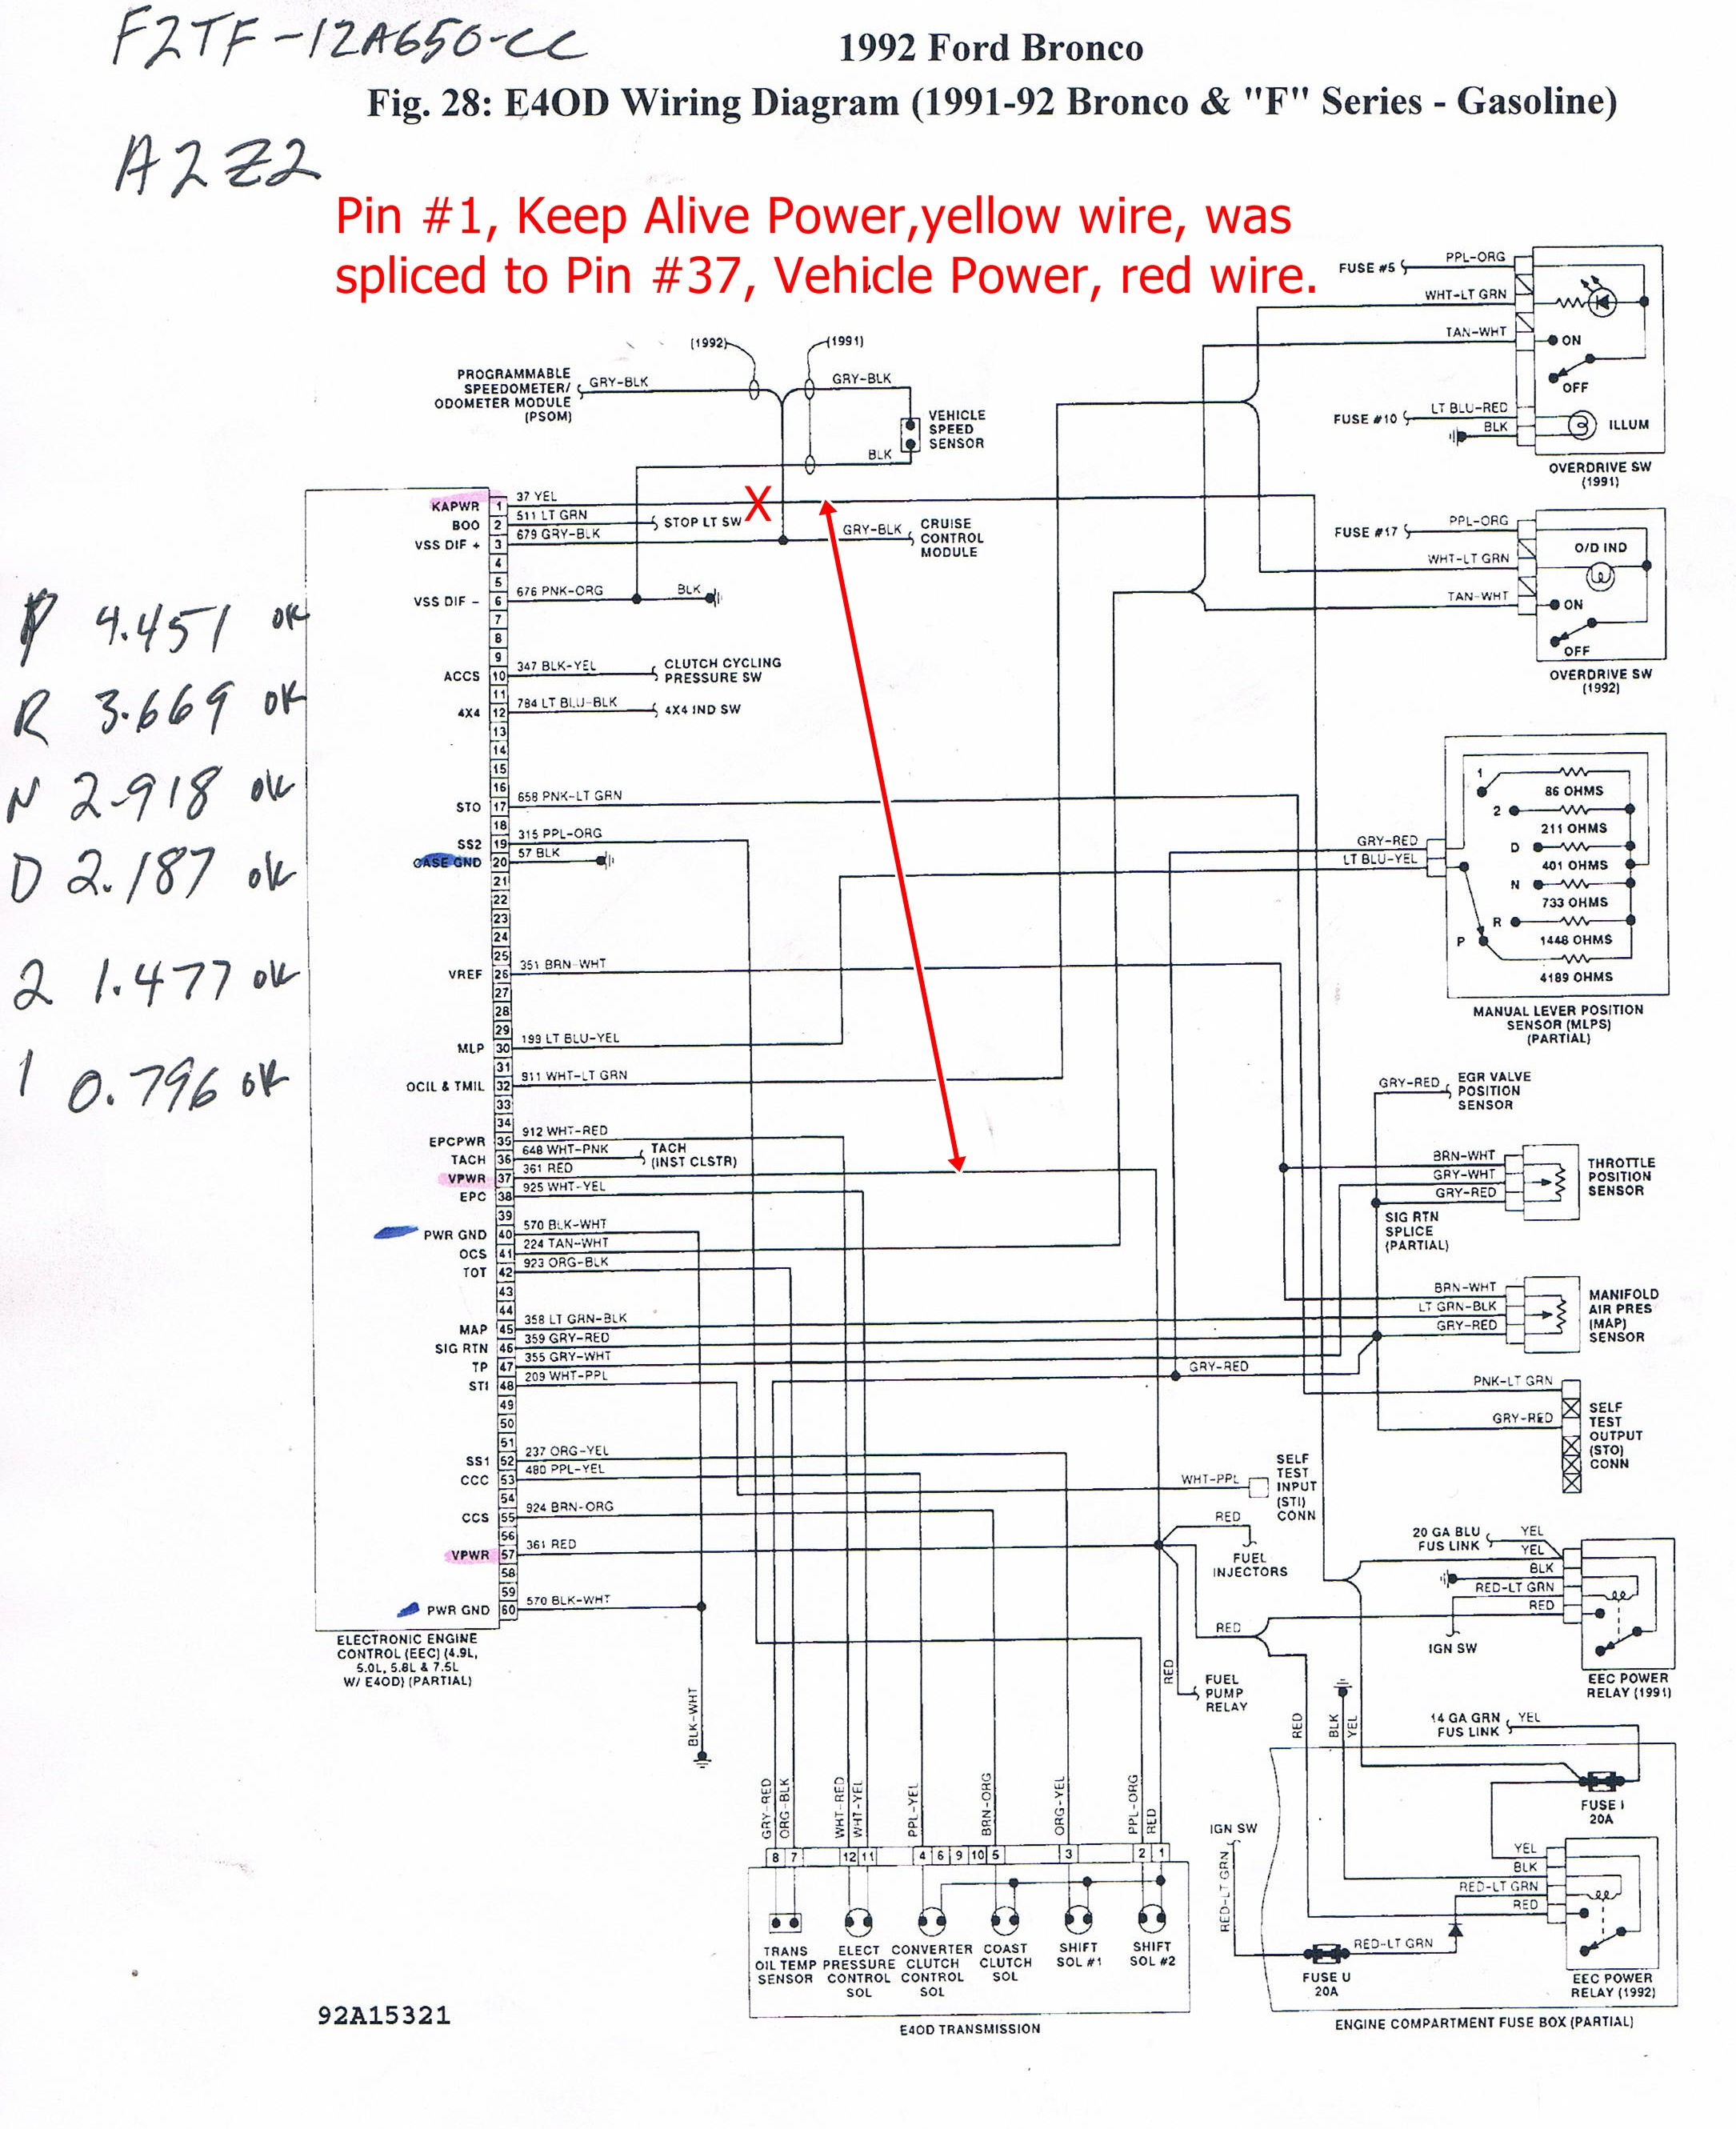 2001 Xc70 Wiring Diagram Electrical Diagrams Volvo V70 Fuel Pump T5 Schematic Database Chassis